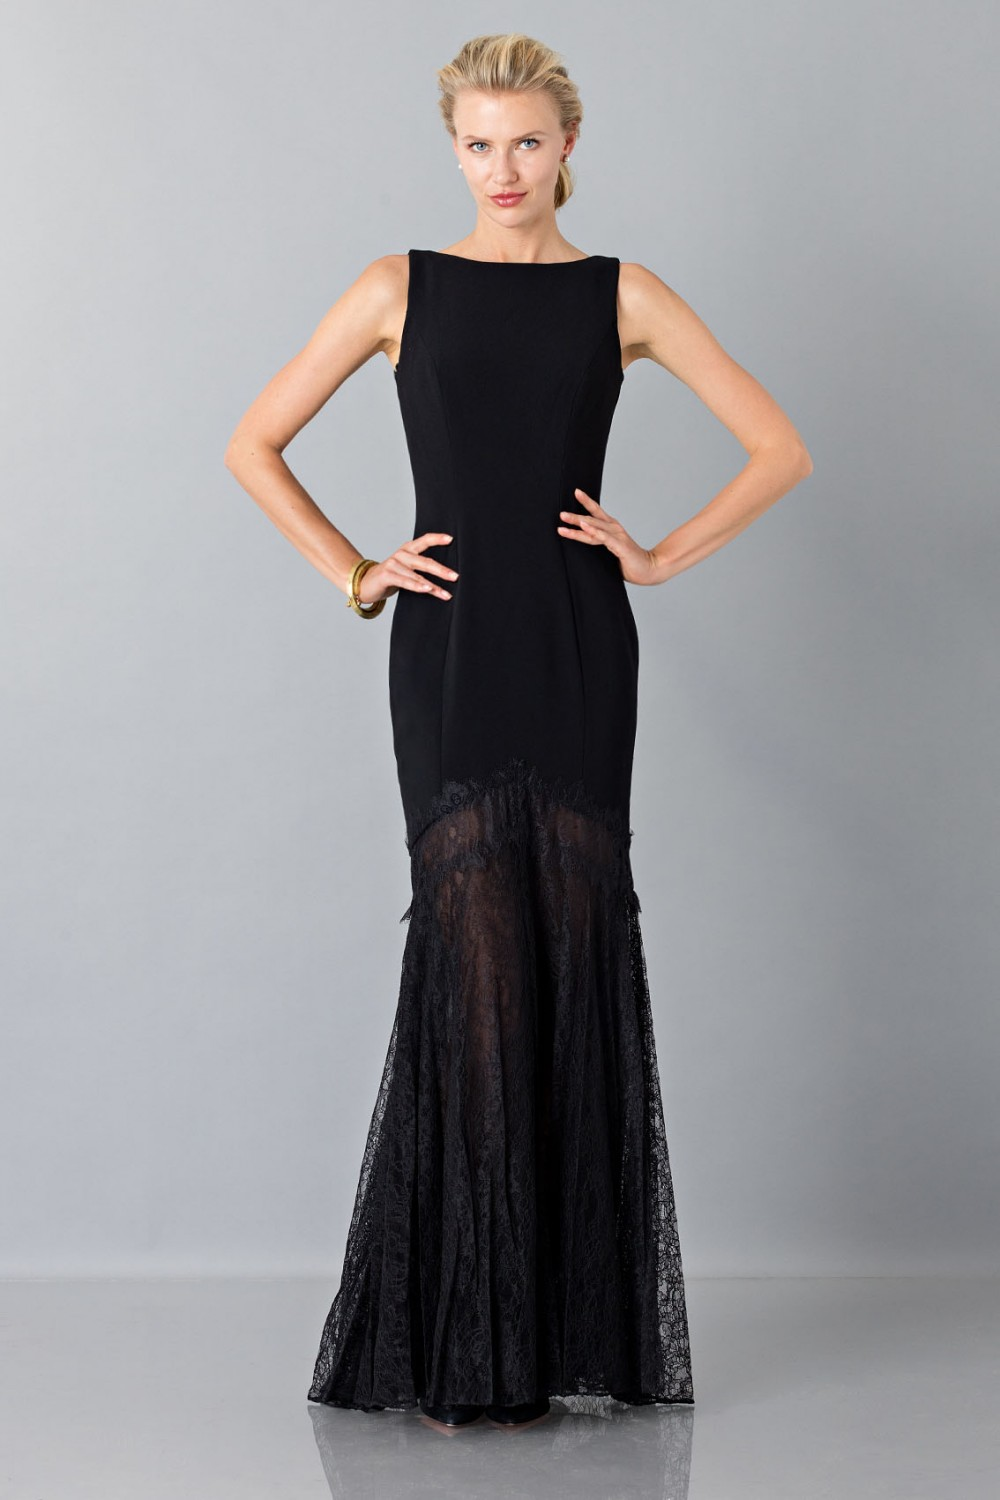 Black dress with transparent lace skirt